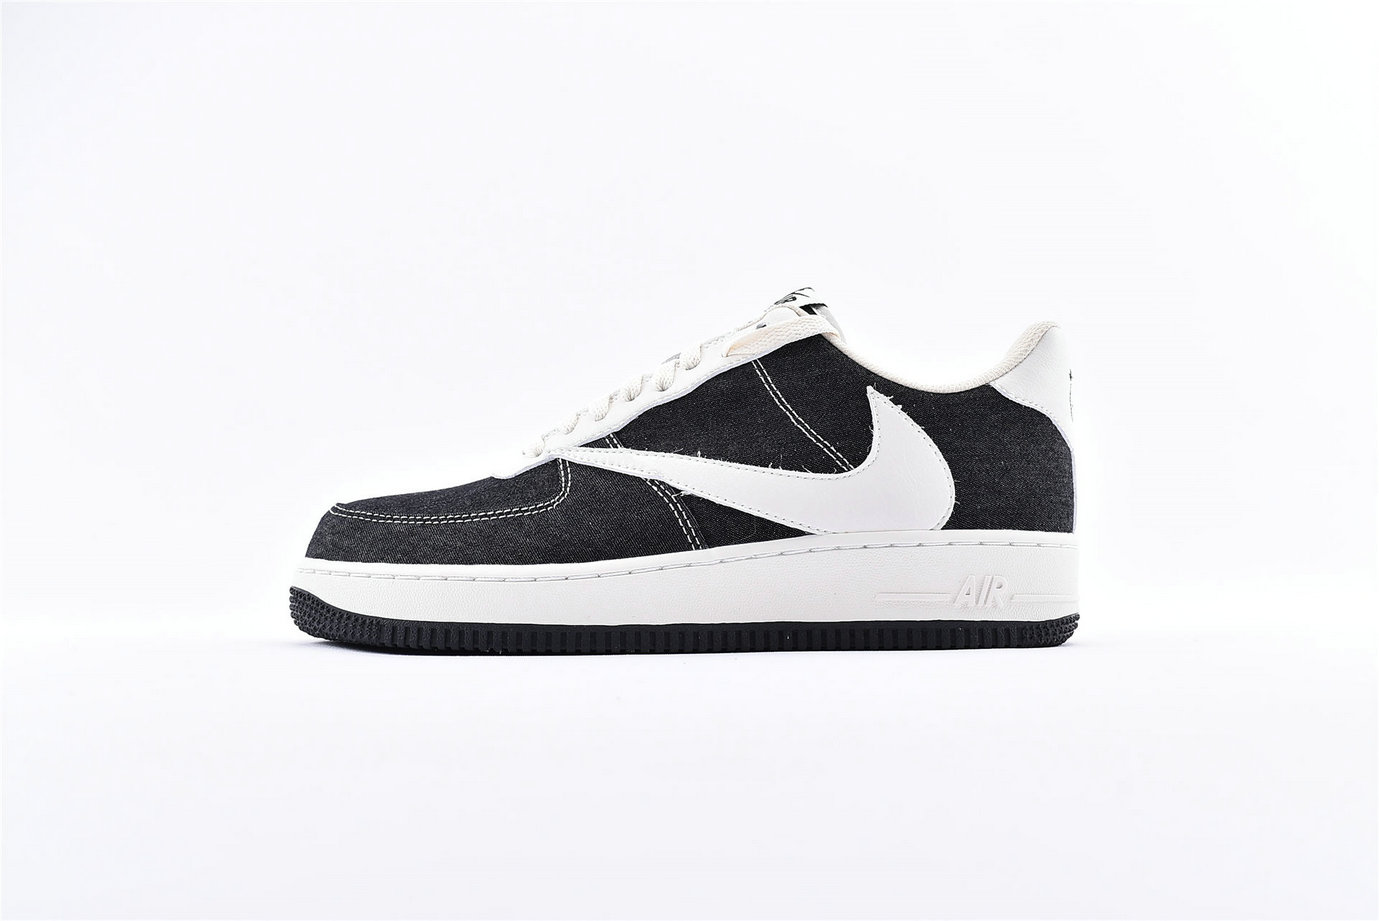 Where To Buy Wholesale Cheap Nike Air Force 1 07 Black Milky White CD8619-001 - www.wholesaleflyknit.com